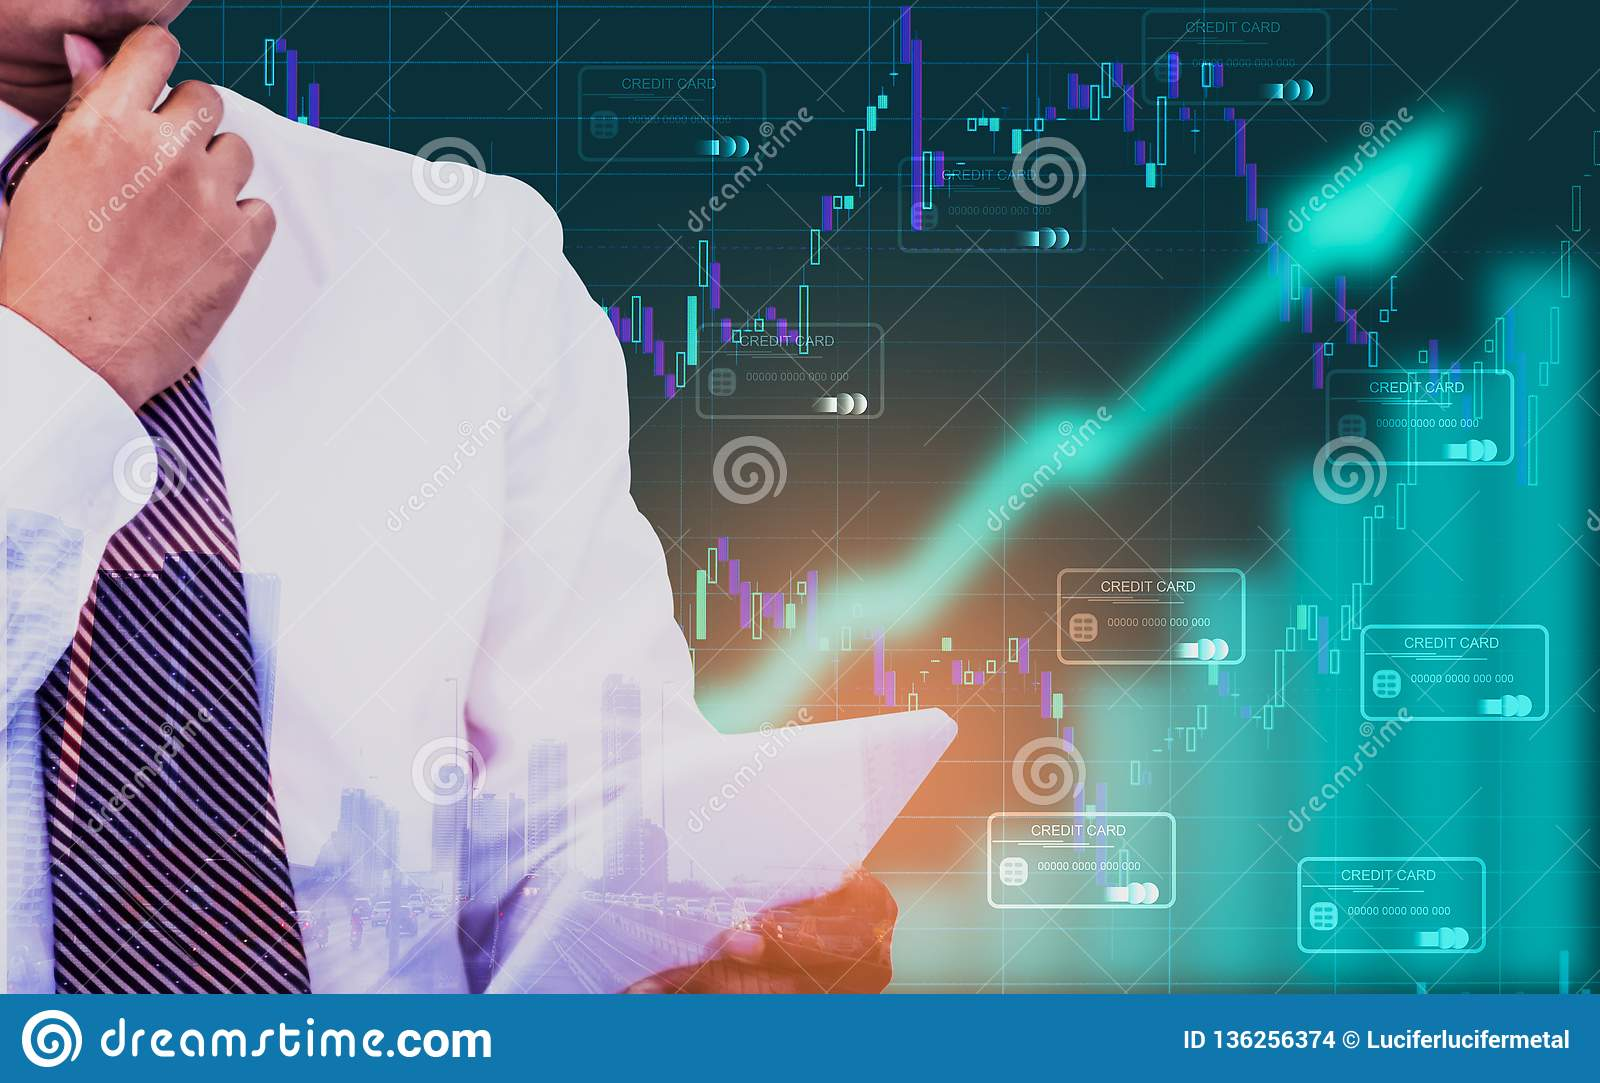 Double exposure - businessman holding a tablet in hand,background an arrow symbol and stock chart,With credit card icon,Concept of